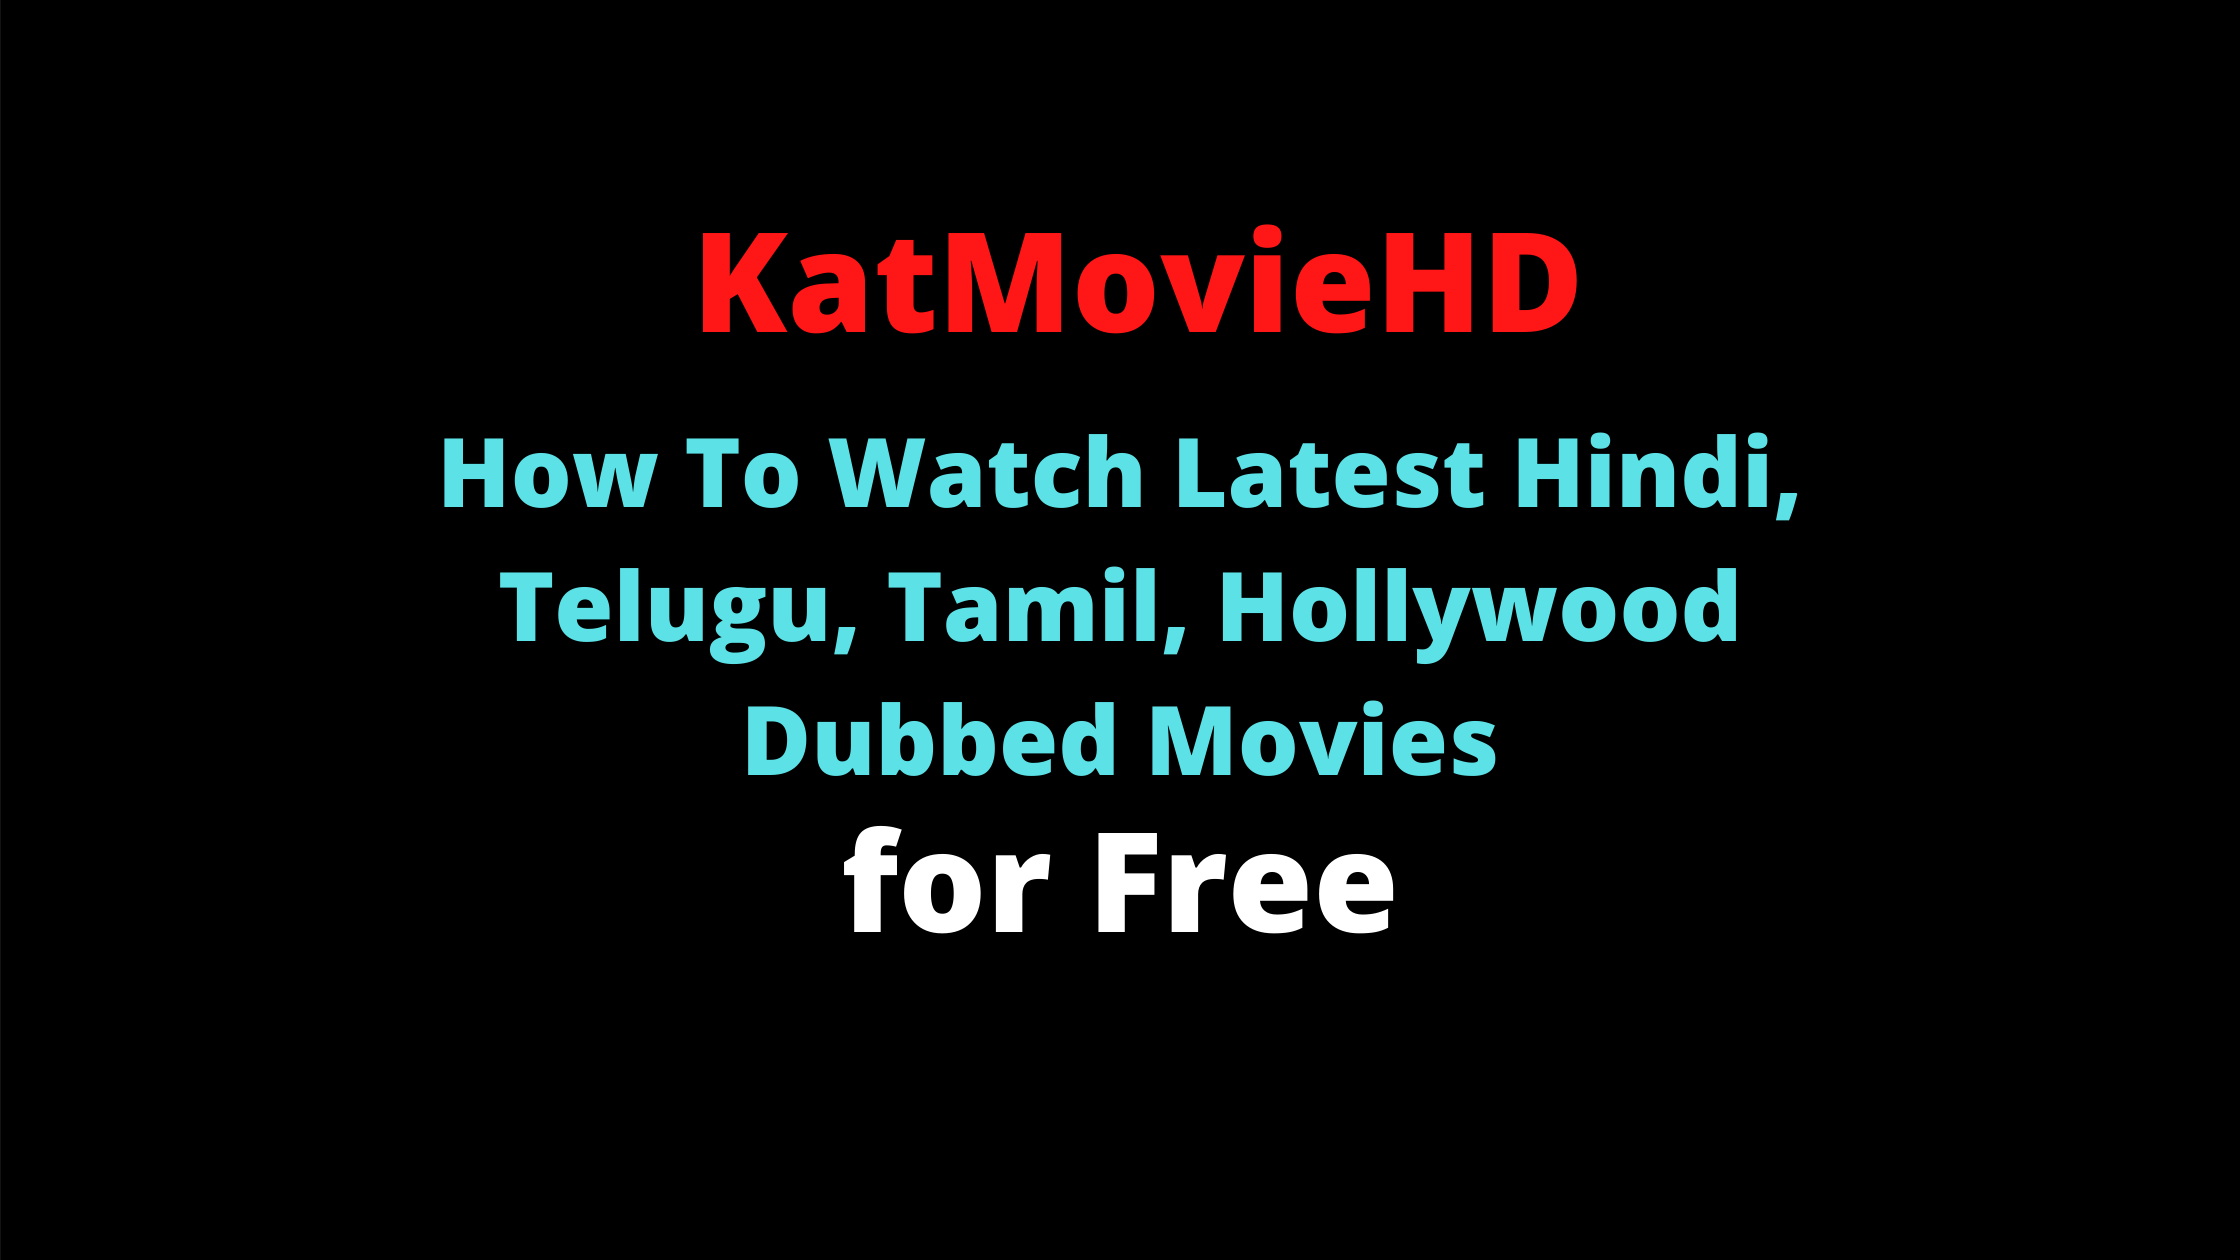 katmoviehd proxy websites, app apk download